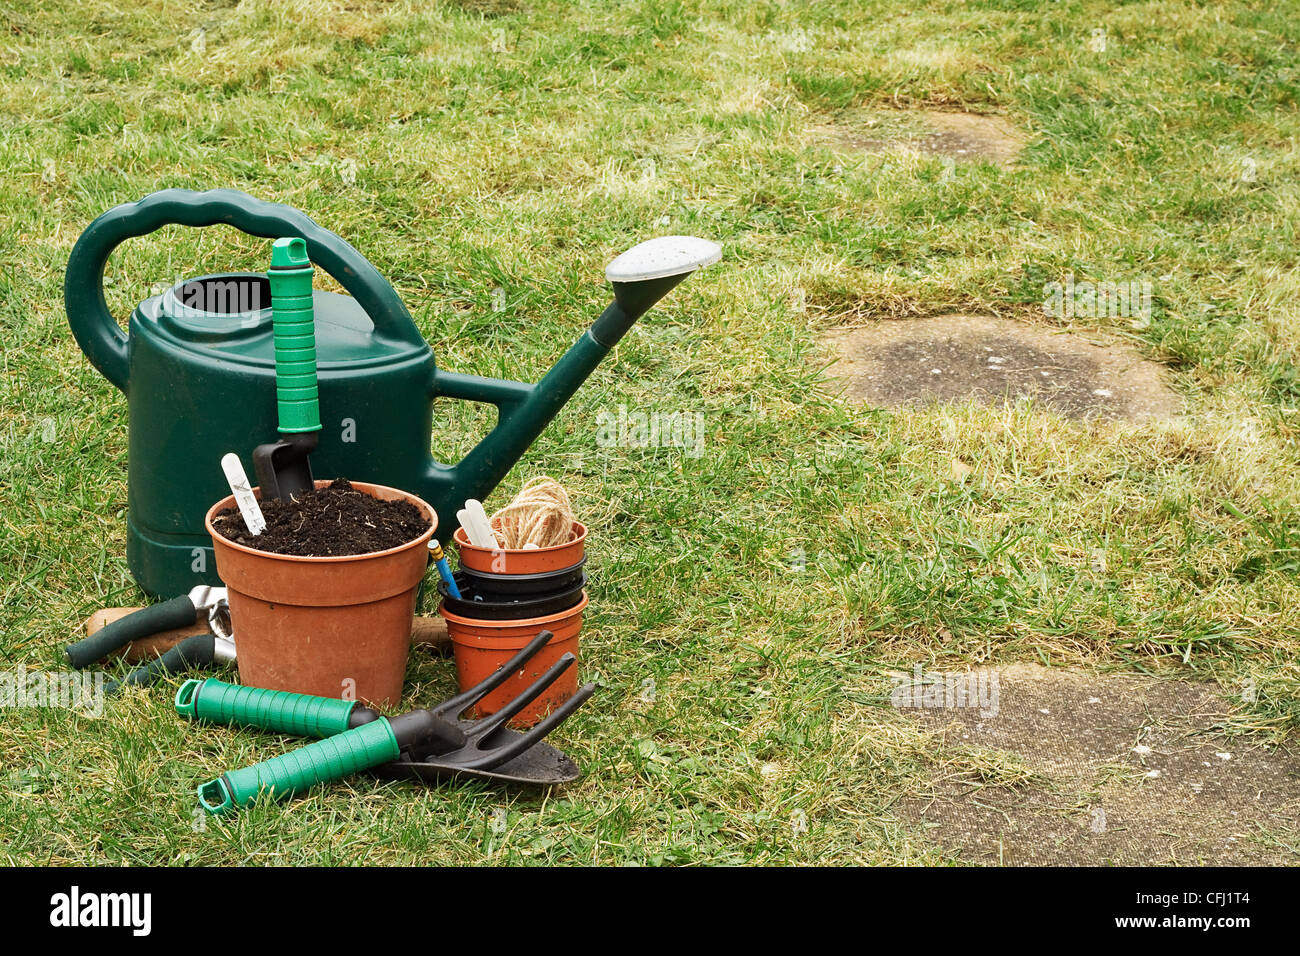 A selection of Garden utensils on the lawn - Stock Image